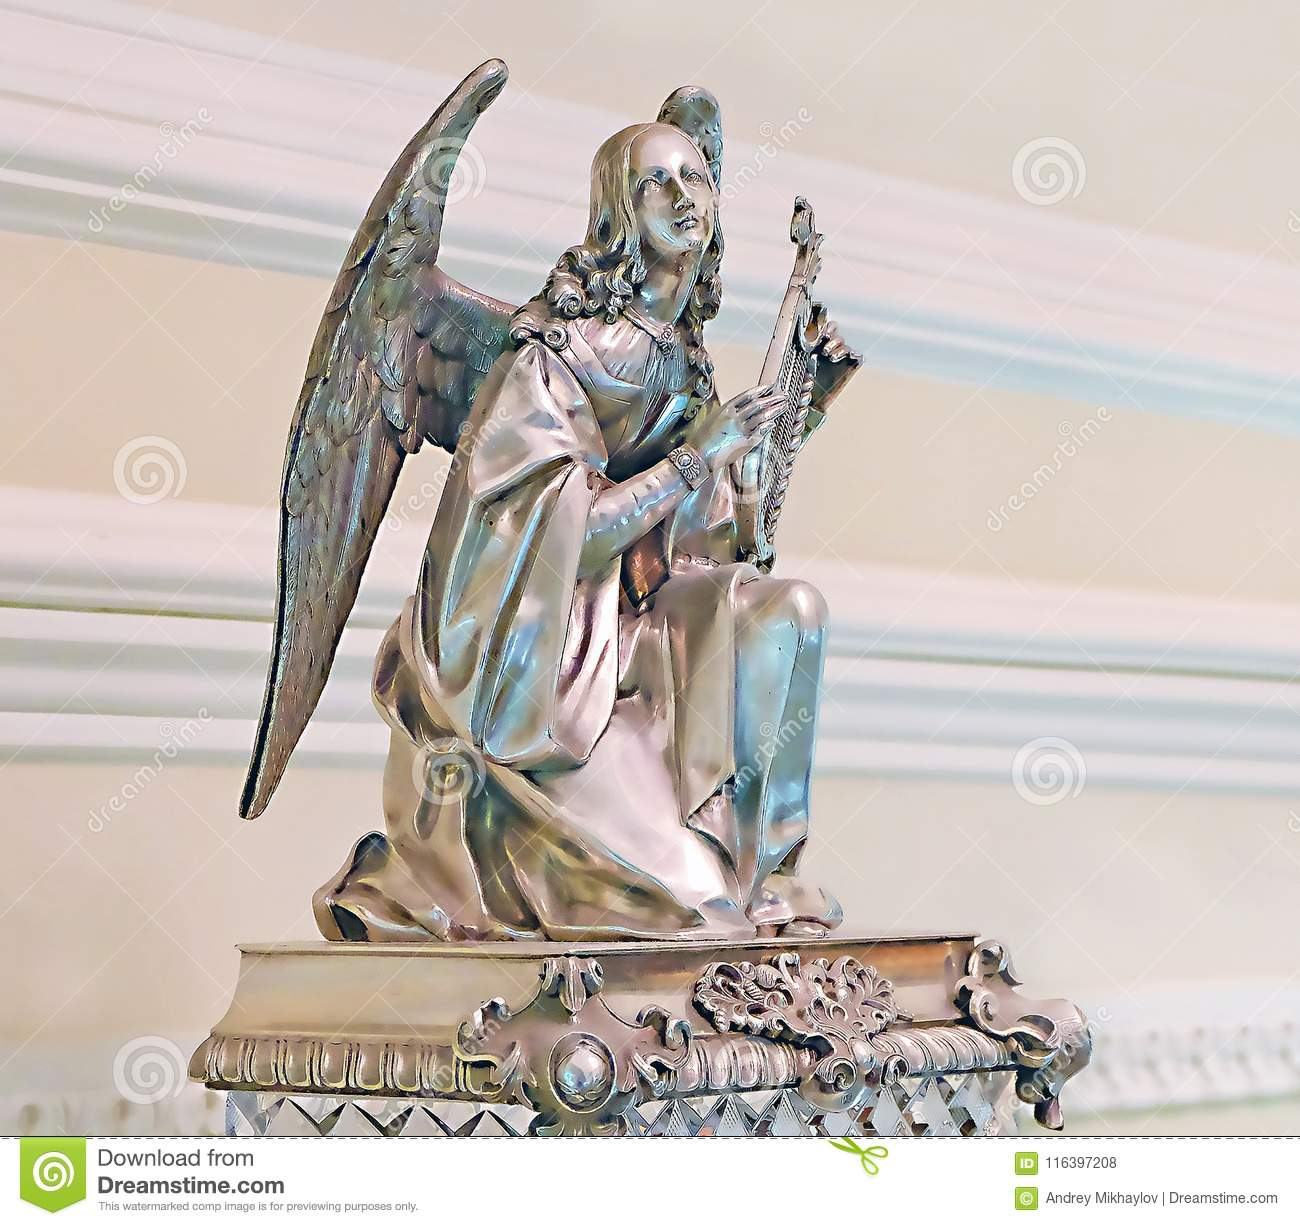 Statuette of an angel and other retro things are standing on a wooden table.